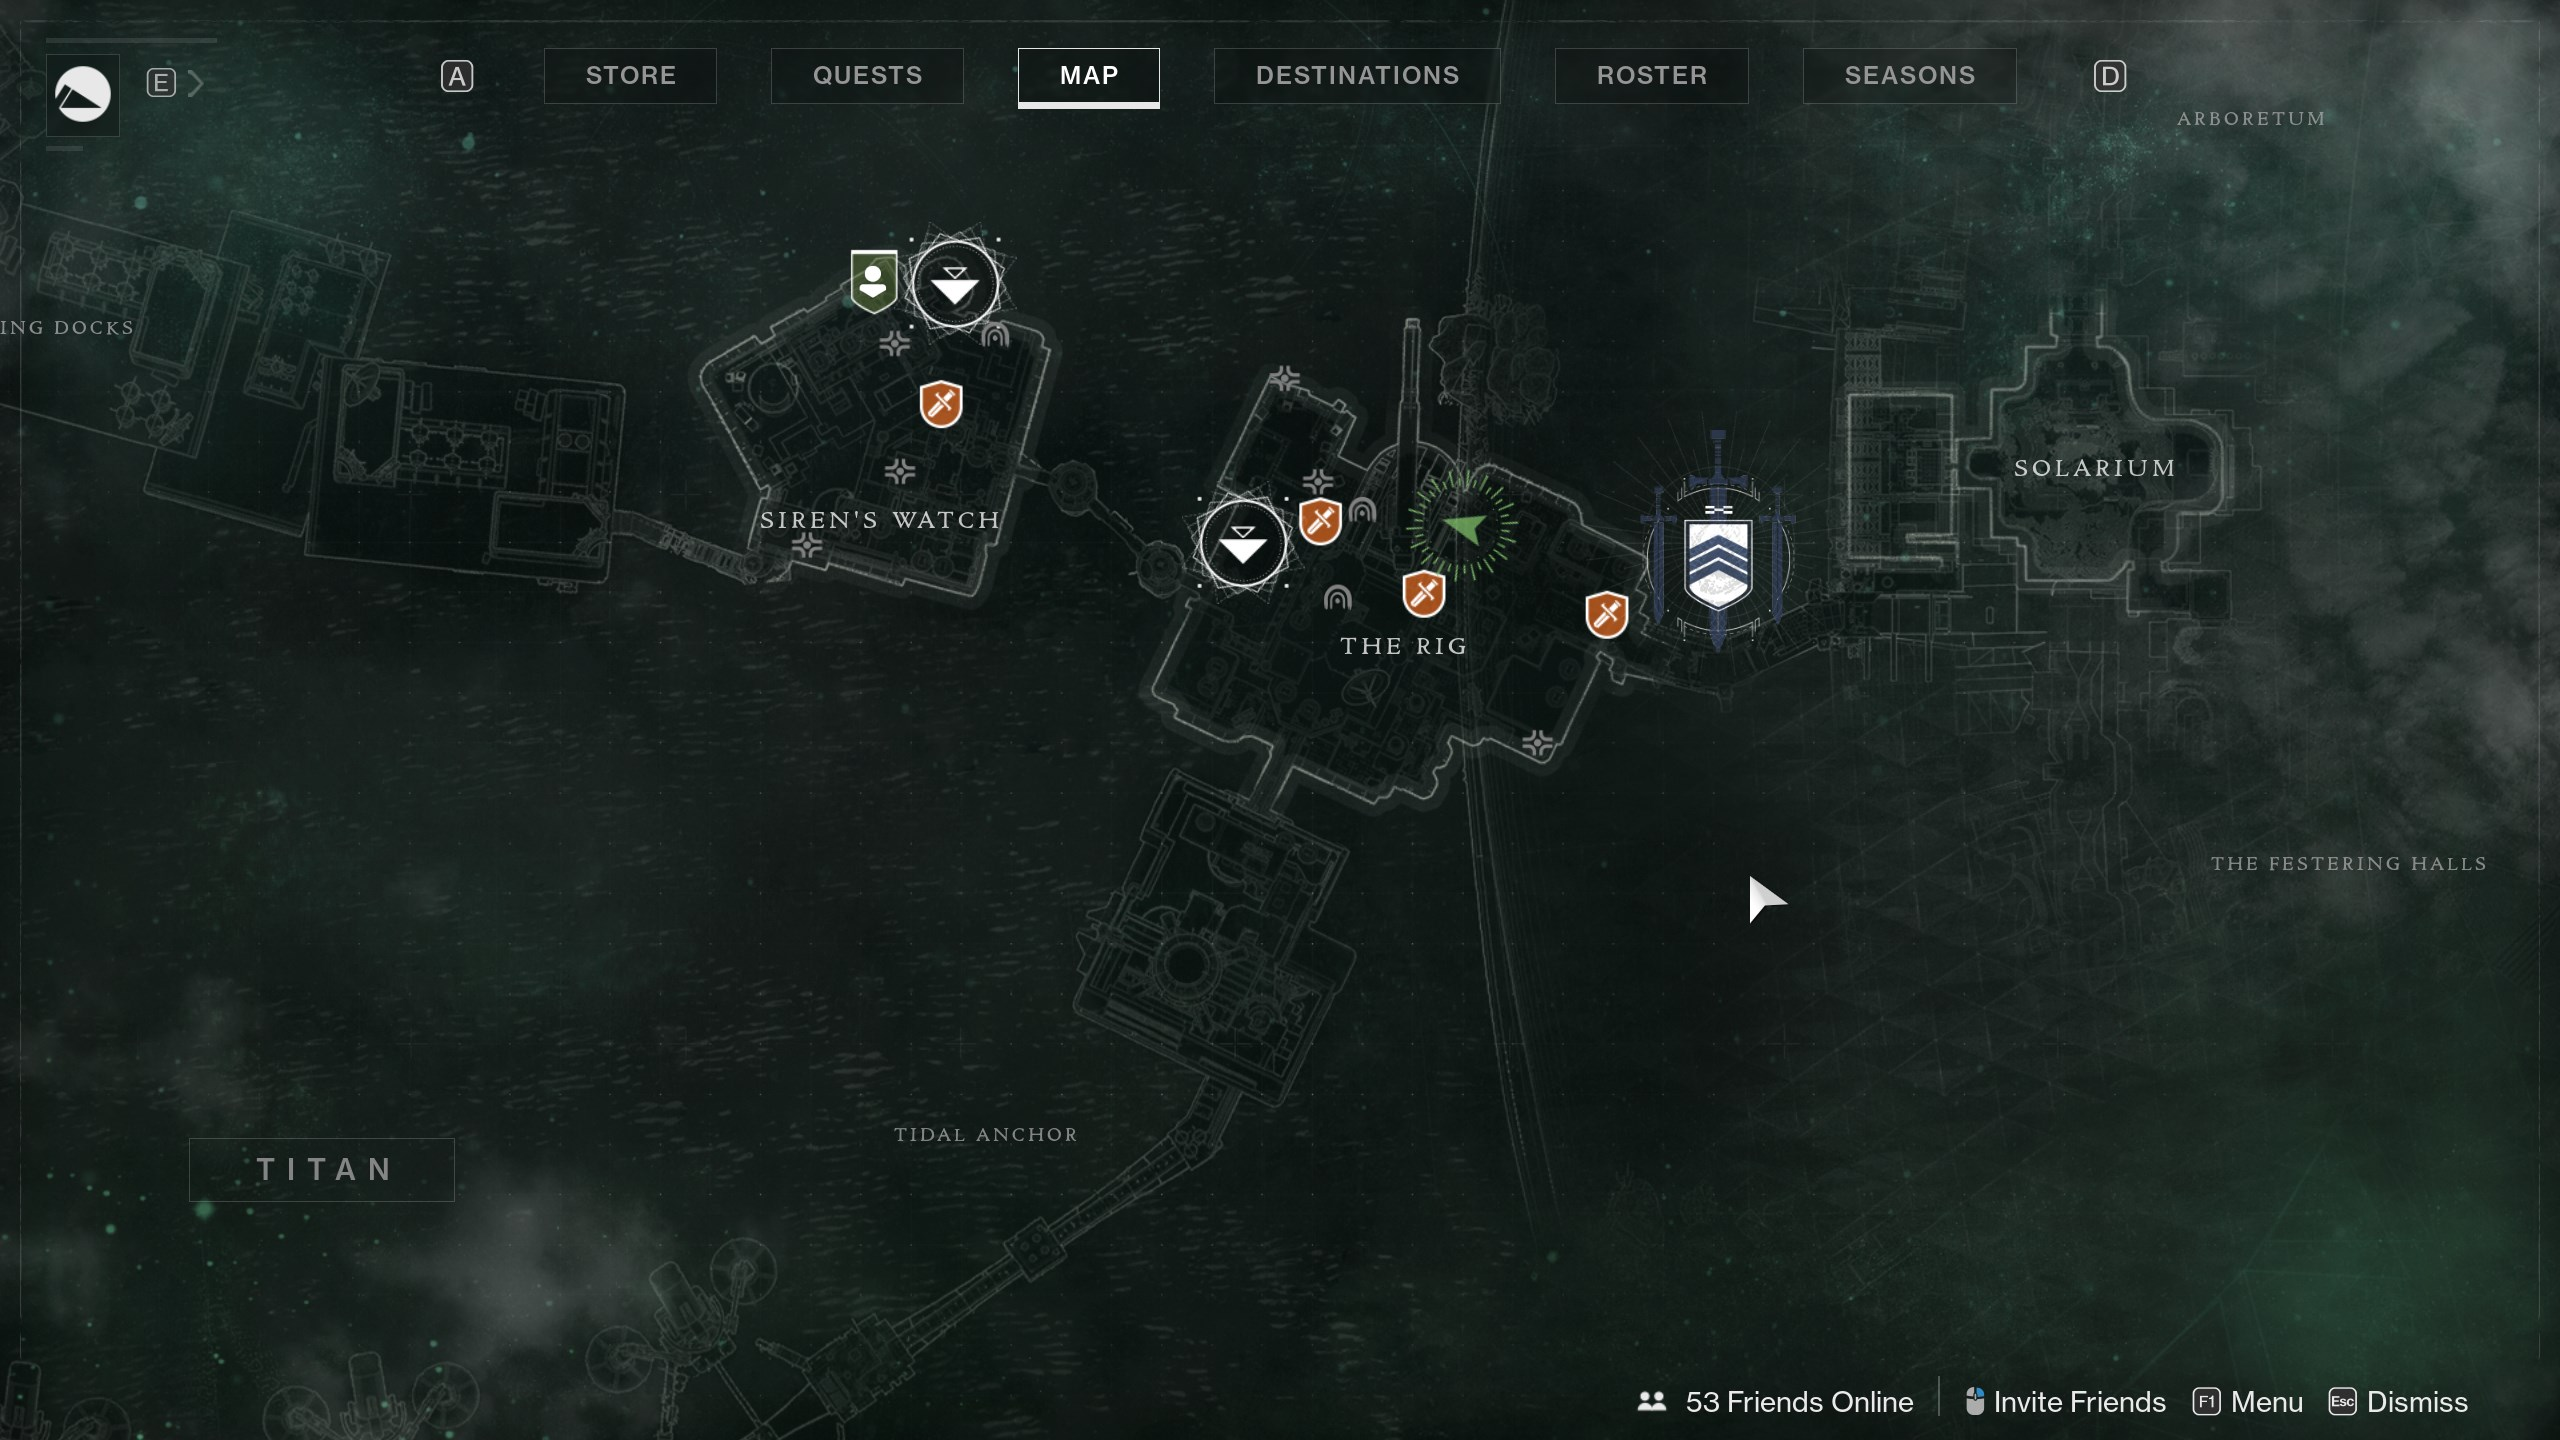 Xur's location and wares for July 24, 2020 - Destiny 2